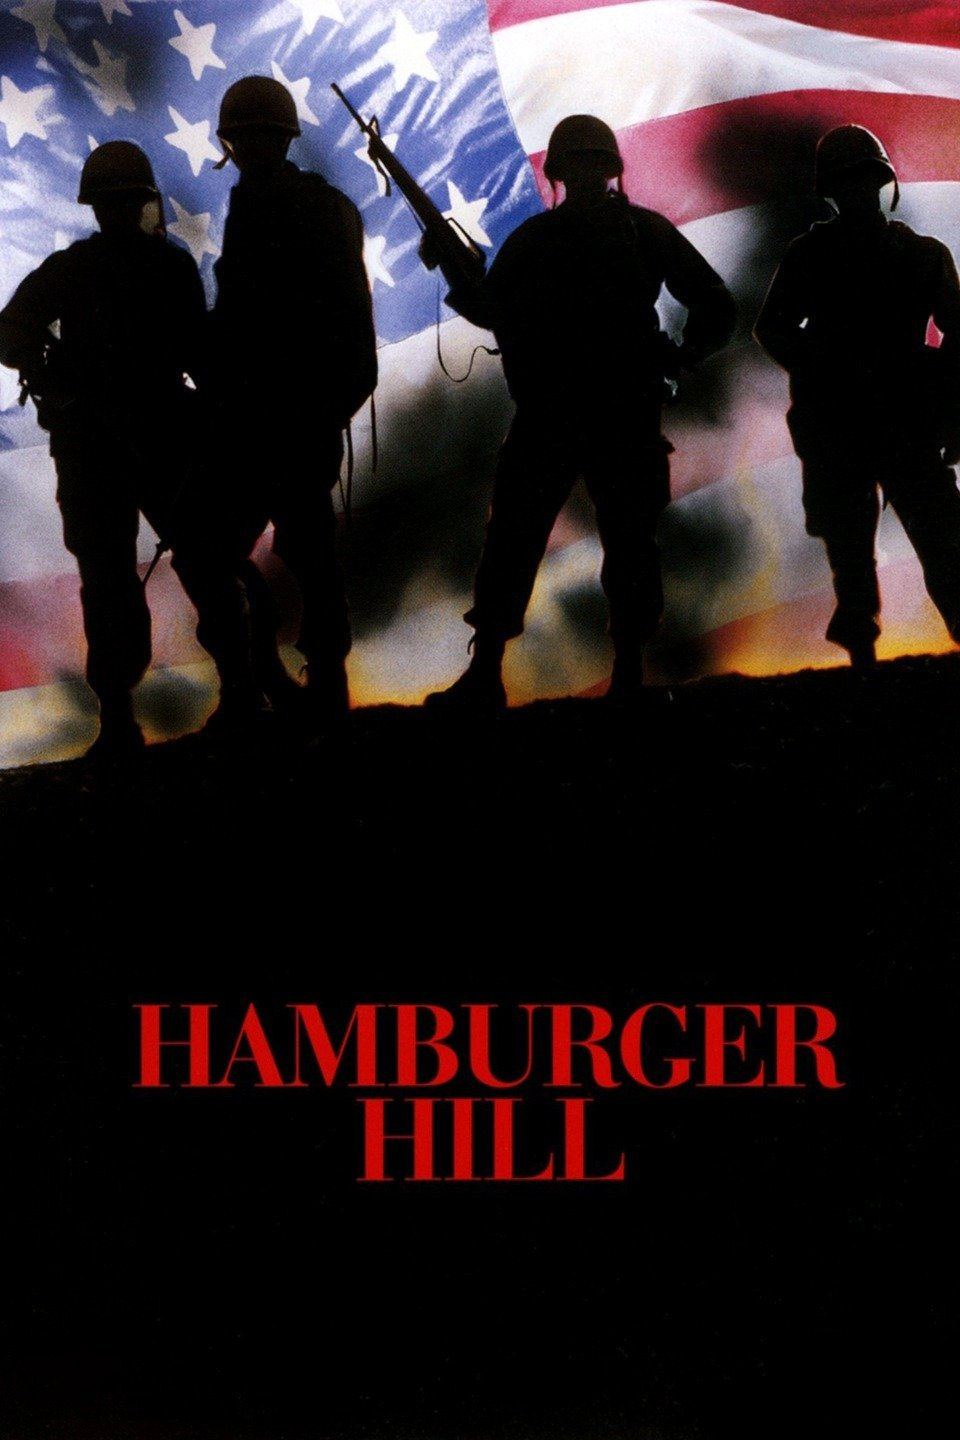 Hamburger Hill-Hamburger Hill